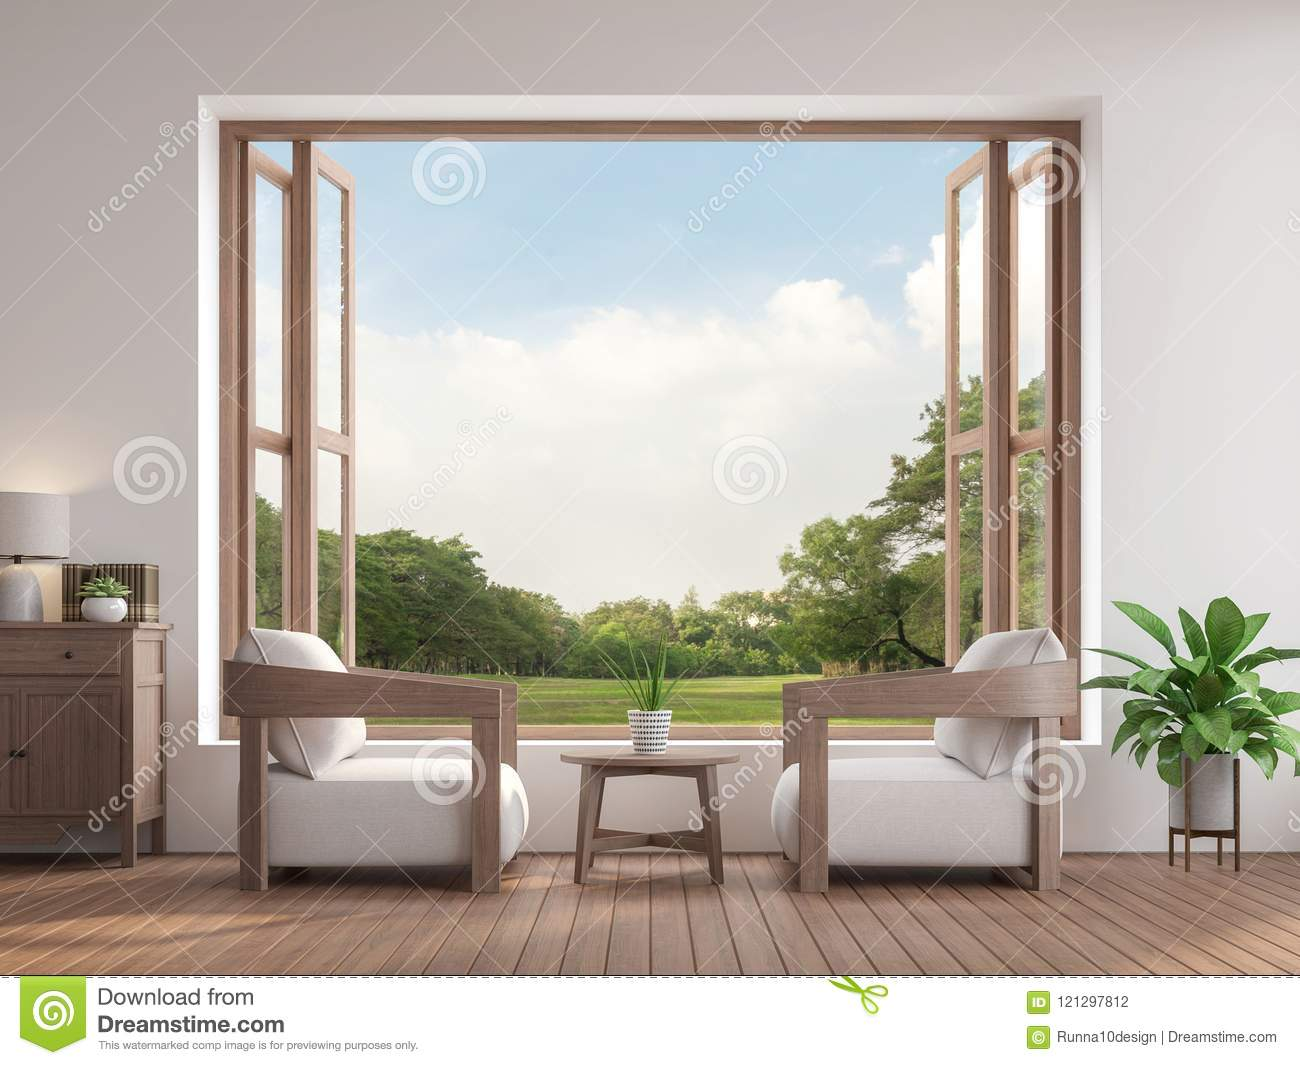 Modern contemporary living room 3d render,There are large open window overlooking to garden view.